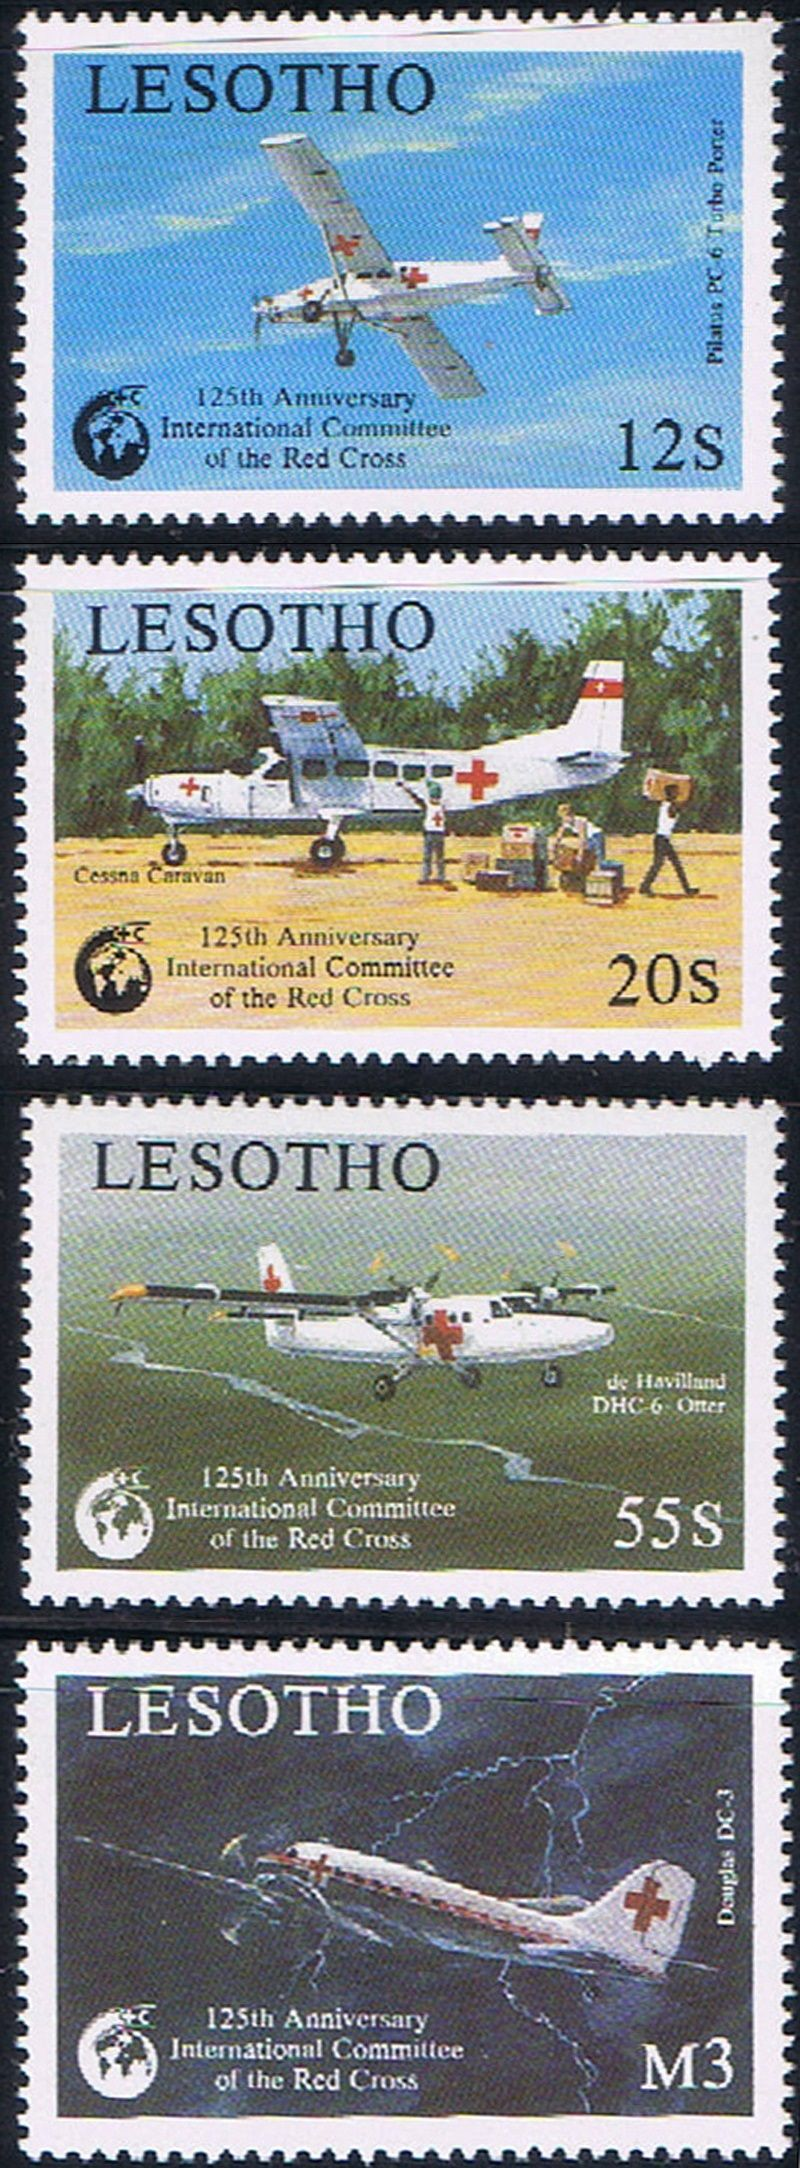 Lesotho issued these stamps to commemorate the 125th anniversary of the International Red Cross. The stamps featured the anniversary emblem, supply and ambulance planes. SC 695-98.